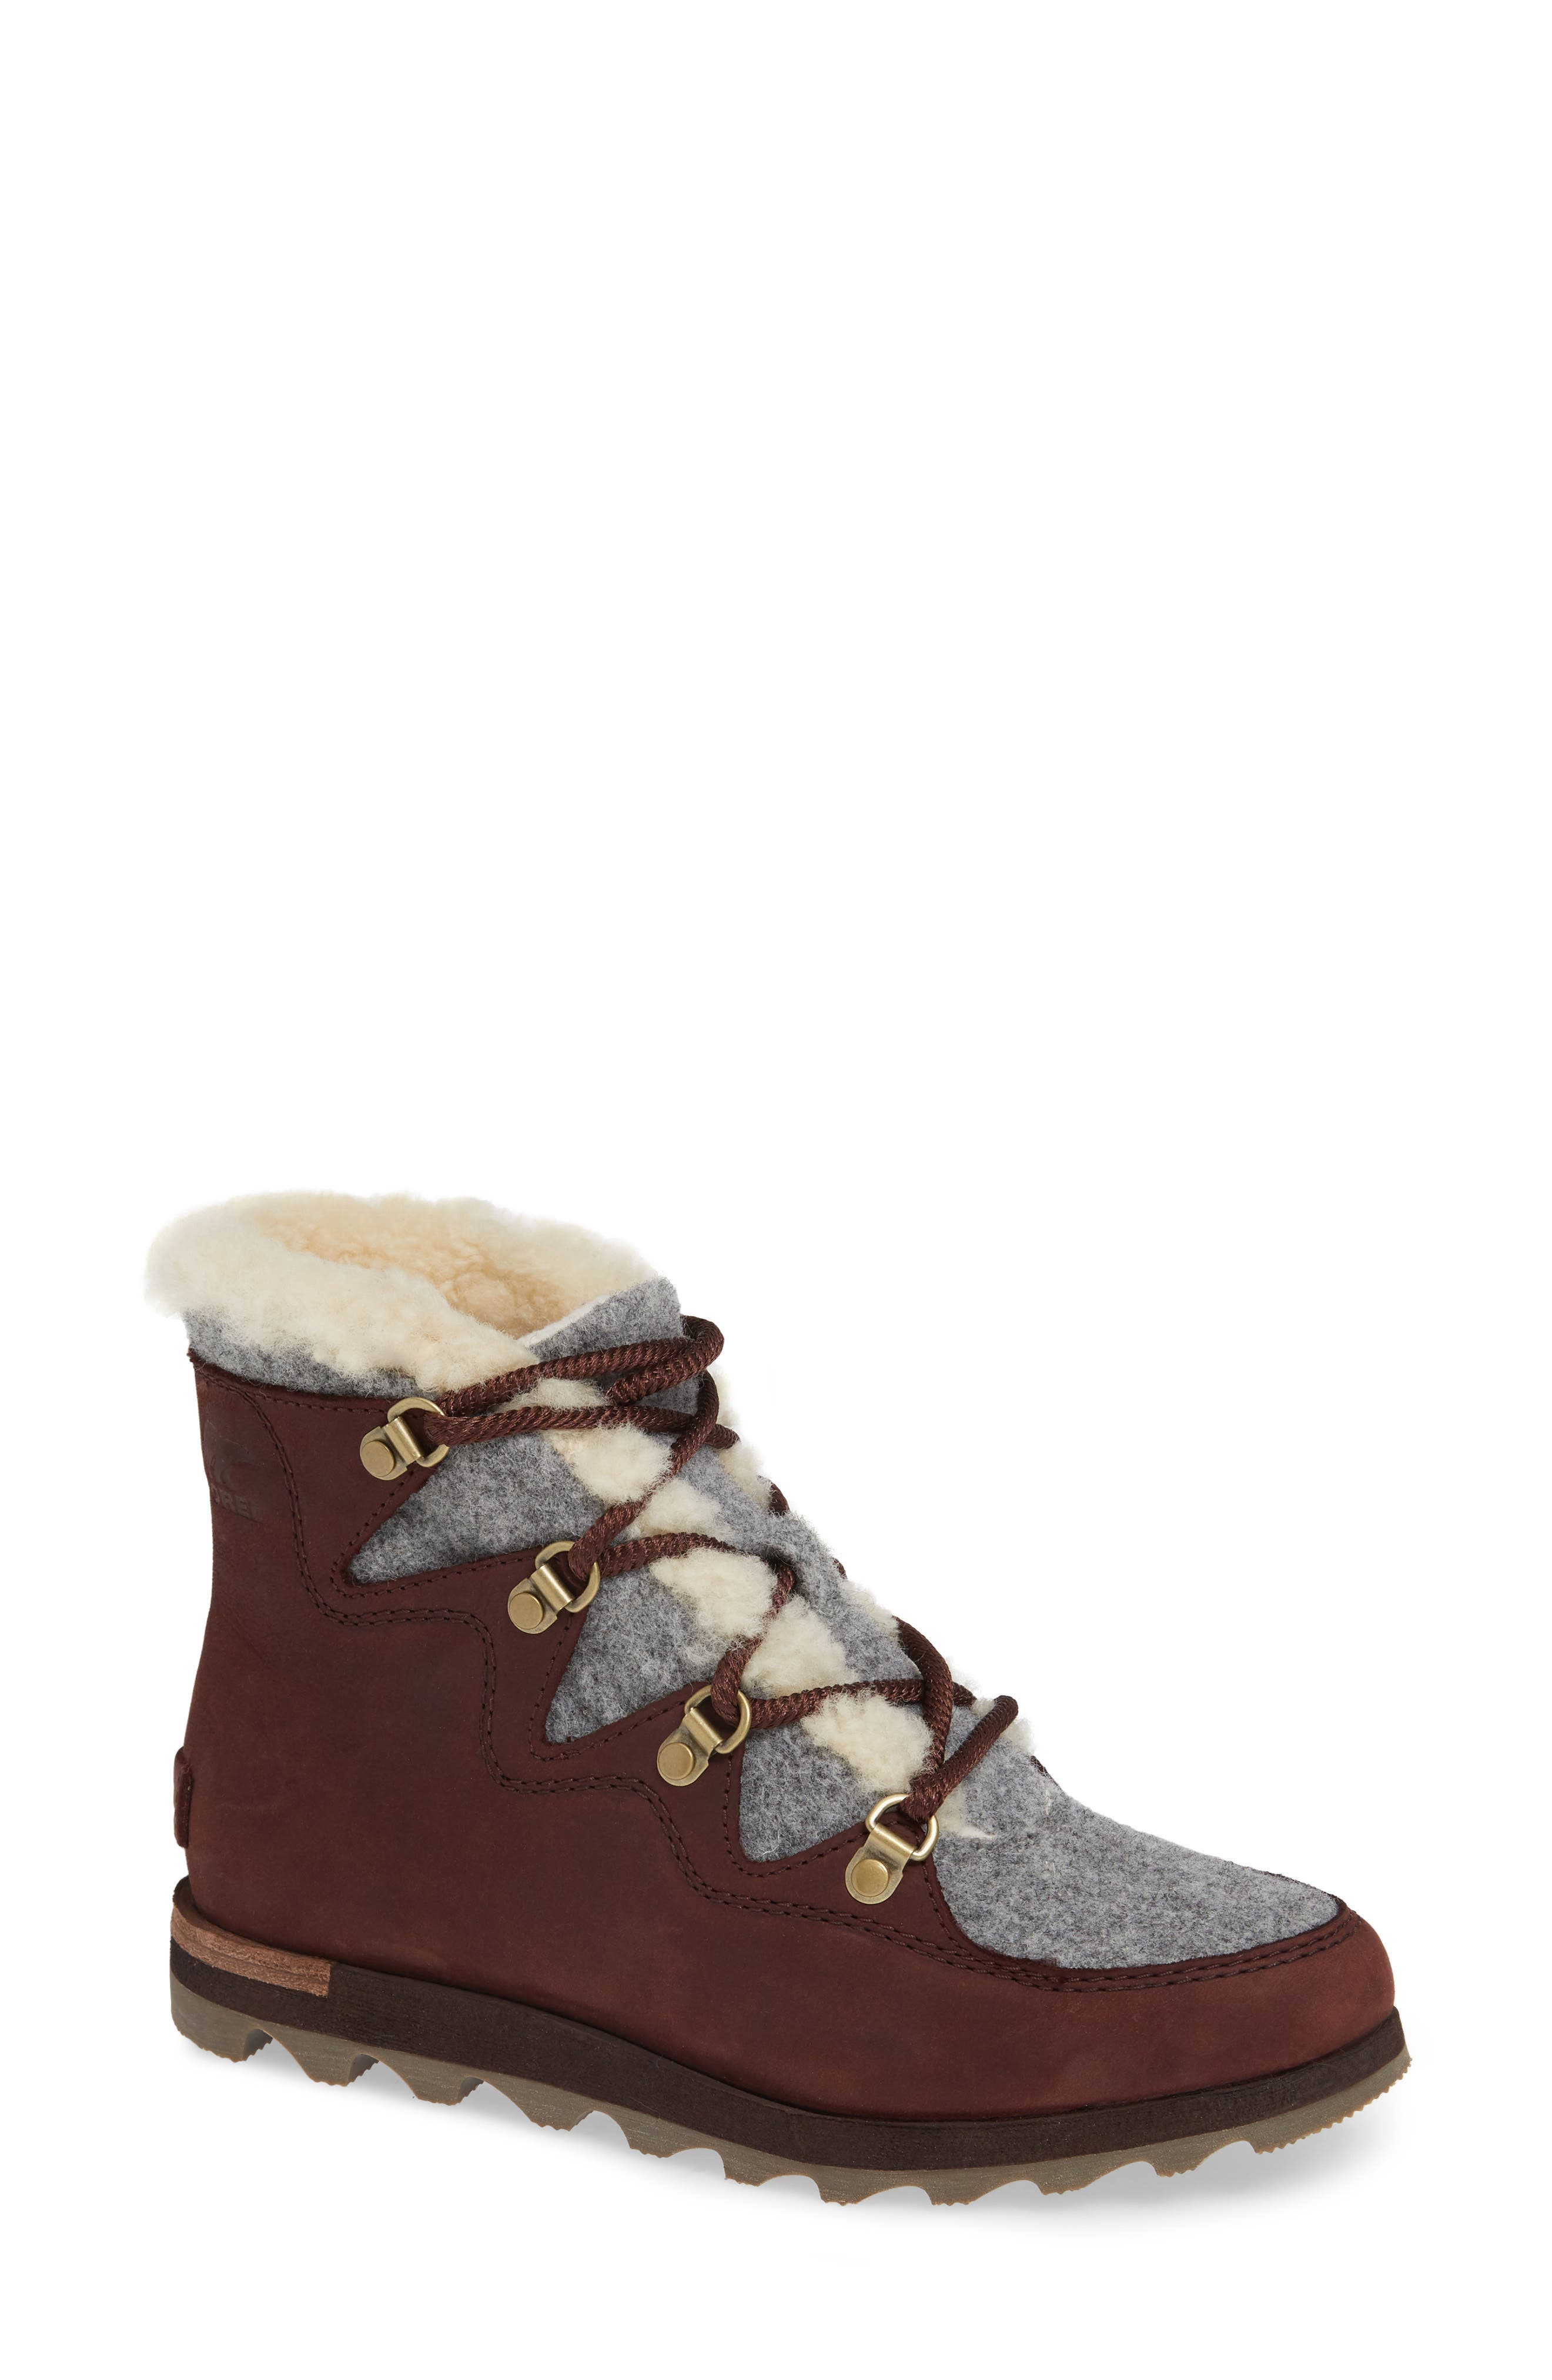 Sorel Sneakchic Alpine Holiday Waterproof Bootie